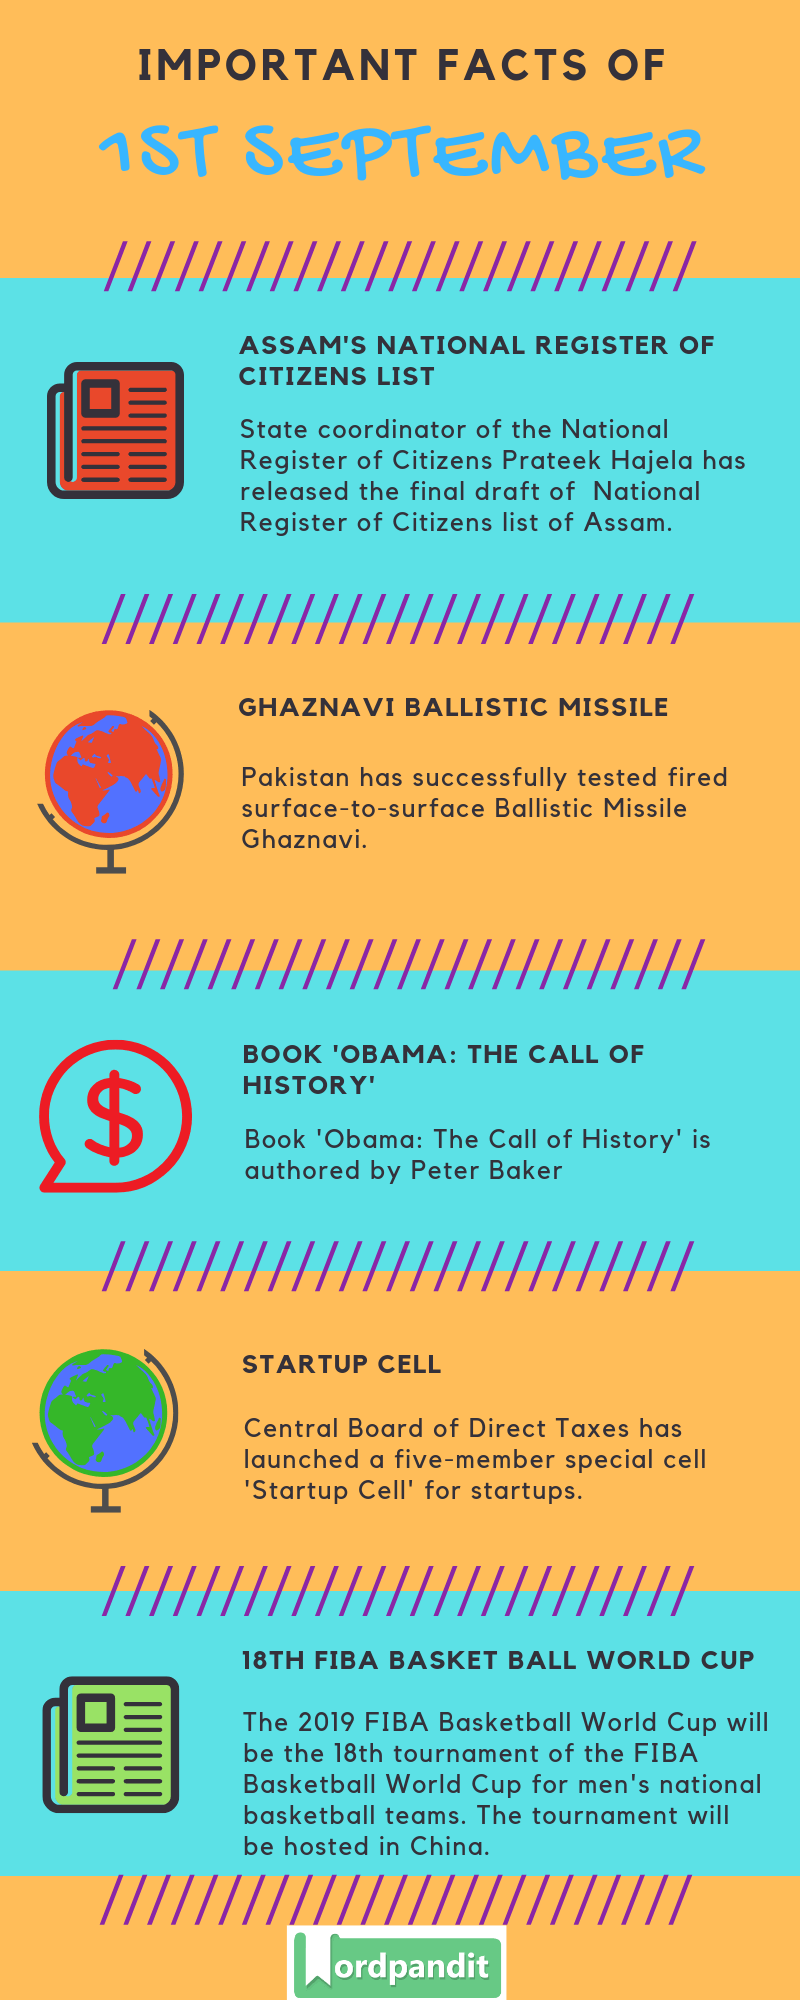 Daily Current Affairs 1 September 2019 Current Affairs Quiz 1 September 2019 Current Affairs Infographic